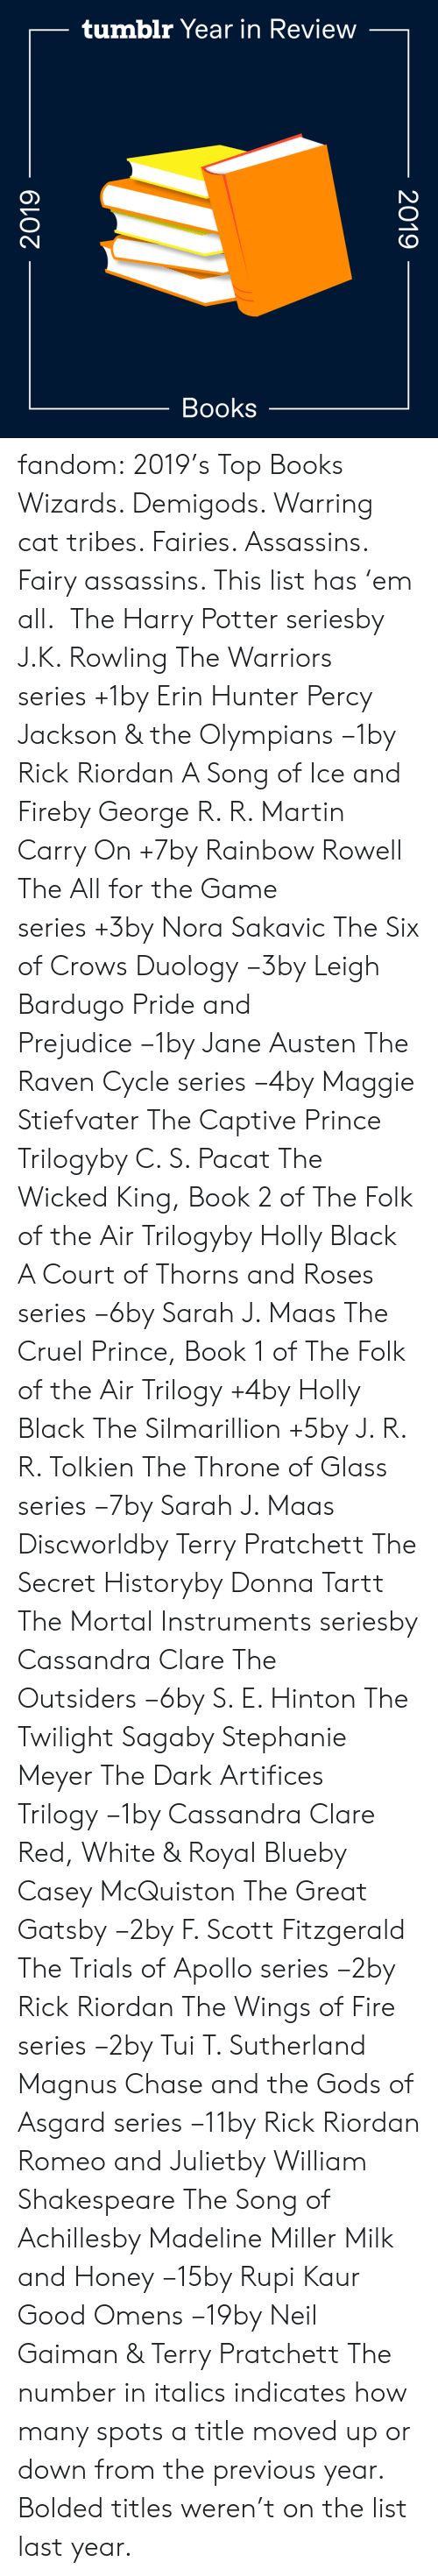 J K: tumblr Year in Review  Books  2019  2019 fandom:  2019's Top Books  Wizards. Demigods. Warring cat tribes. Fairies. Assassins. Fairy assassins. This list has 'em all.   The Harry Potter seriesby J.K. Rowling  The Warriors series +1by Erin Hunter  Percy Jackson & the Olympians −1by Rick Riordan  A Song of Ice and Fireby George R. R. Martin  Carry On +7by Rainbow Rowell  The All for the Game series +3by Nora Sakavic  The Six of Crows Duology −3by Leigh Bardugo  Pride and Prejudice −1by Jane Austen  The Raven Cycle series −4by Maggie Stiefvater  The Captive Prince Trilogyby C. S. Pacat  The Wicked King, Book 2 of The Folk of the Air Trilogyby Holly Black  A Court of Thorns and Roses series −6by Sarah J. Maas  The Cruel Prince, Book 1 of The Folk of the Air Trilogy +4by Holly Black  The Silmarillion +5by J. R. R. Tolkien  The Throne of Glass series −7by Sarah J. Maas  Discworldby Terry Pratchett  The Secret Historyby Donna Tartt  The Mortal Instruments seriesby Cassandra Clare  The Outsiders −6by S. E. Hinton  The Twilight Sagaby Stephanie Meyer  The Dark Artifices Trilogy −1by Cassandra Clare  Red, White & Royal Blueby Casey McQuiston  The Great Gatsby −2by F. Scott Fitzgerald  The Trials of Apollo series −2by Rick Riordan  The Wings of Fire series −2by Tui T. Sutherland  Magnus Chase and the Gods of Asgard series −11by Rick Riordan  Romeo and Julietby William Shakespeare  The Song of Achillesby Madeline Miller  Milk and Honey −15by Rupi Kaur  Good Omens −19by Neil Gaiman & Terry Pratchett The number in italics indicates how many spots a title moved up or down from the previous year. Bolded titles weren't on the list last year.